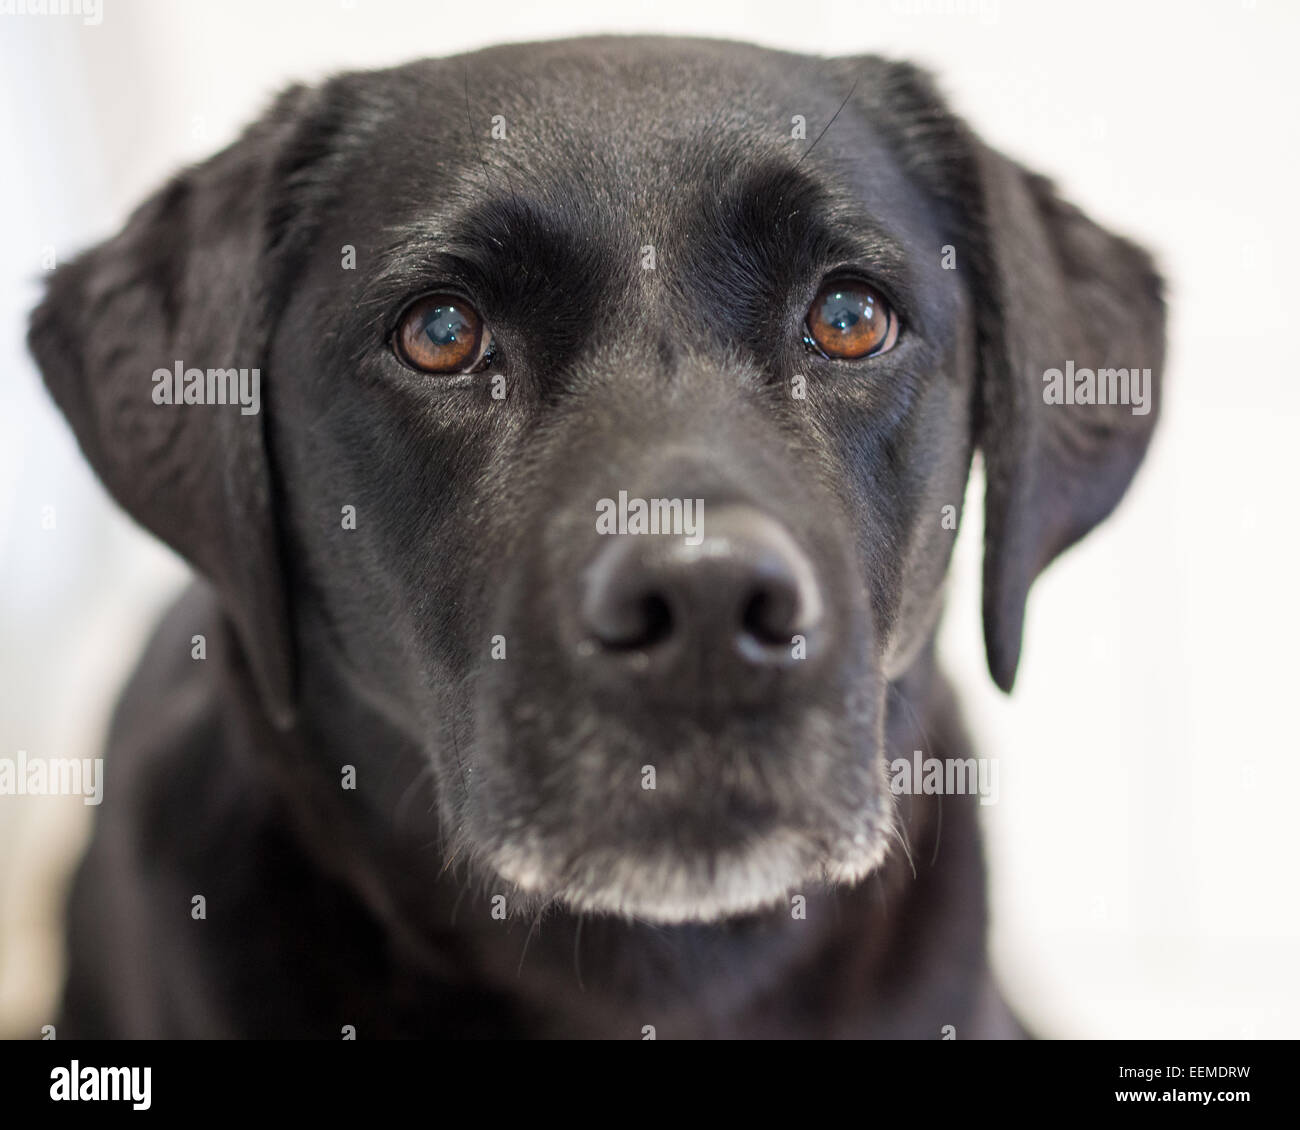 Large Dogs With Black Faces